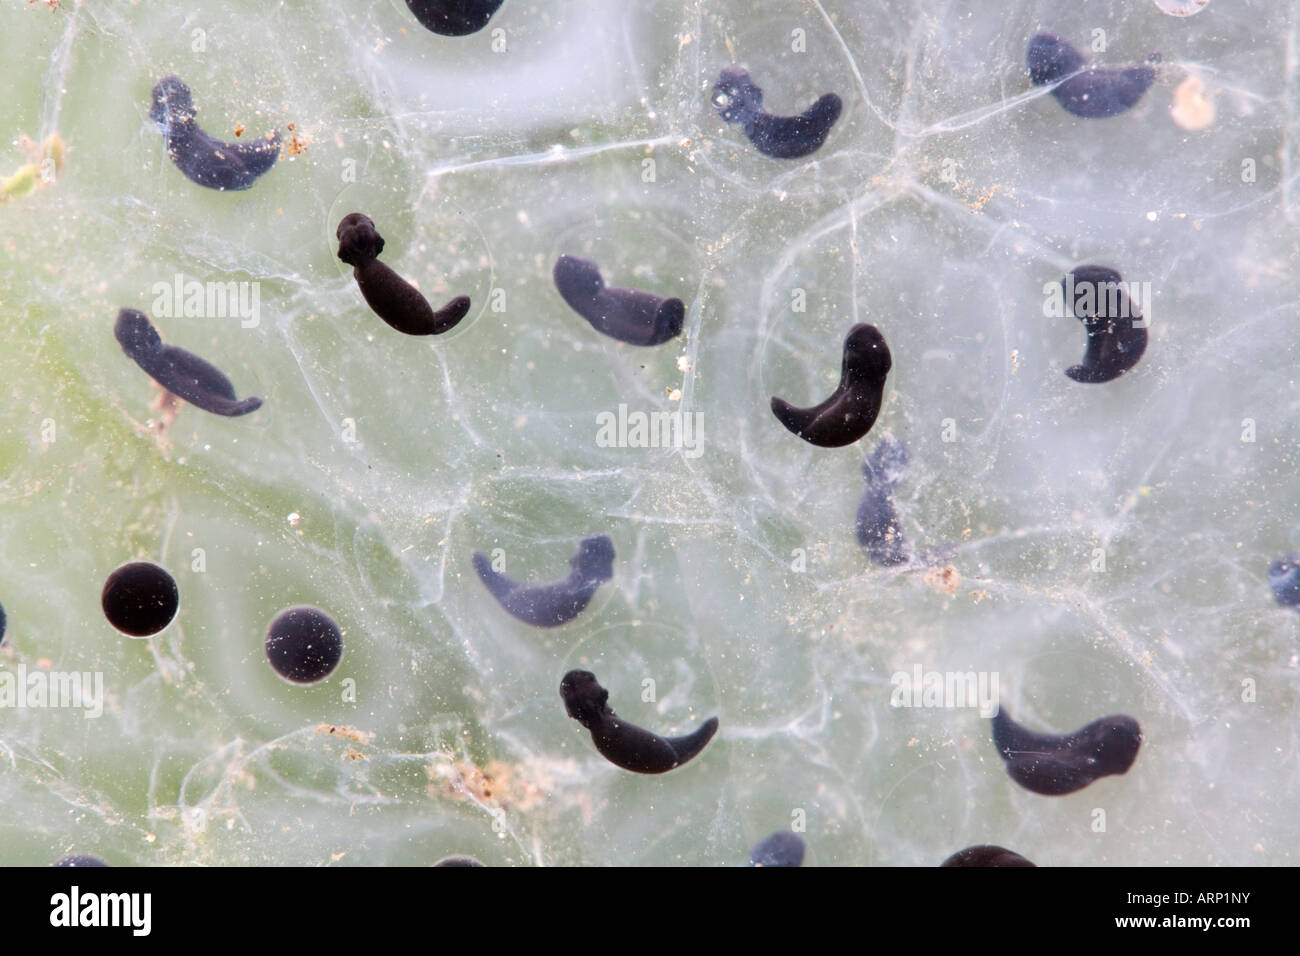 common frog spawn Rana temporaria tadpoles just developing - Stock Image